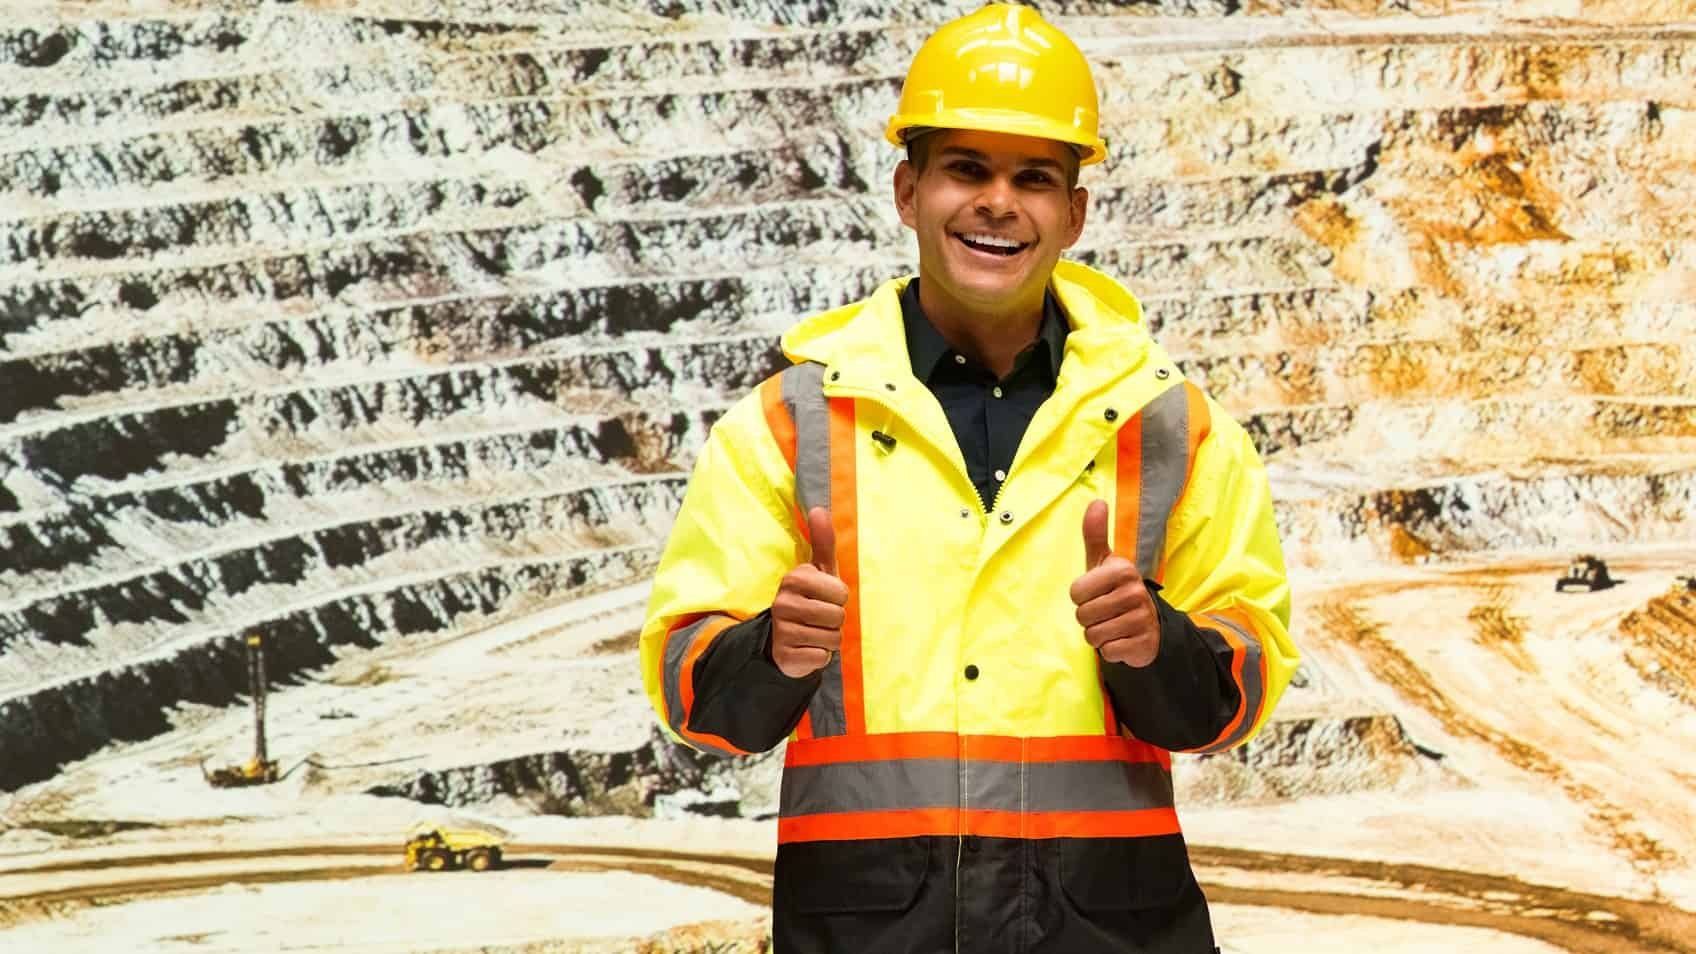 A happy minner does the thumbs up in front of an open pit copper mine, indicating a surging share price in ASX mining shares